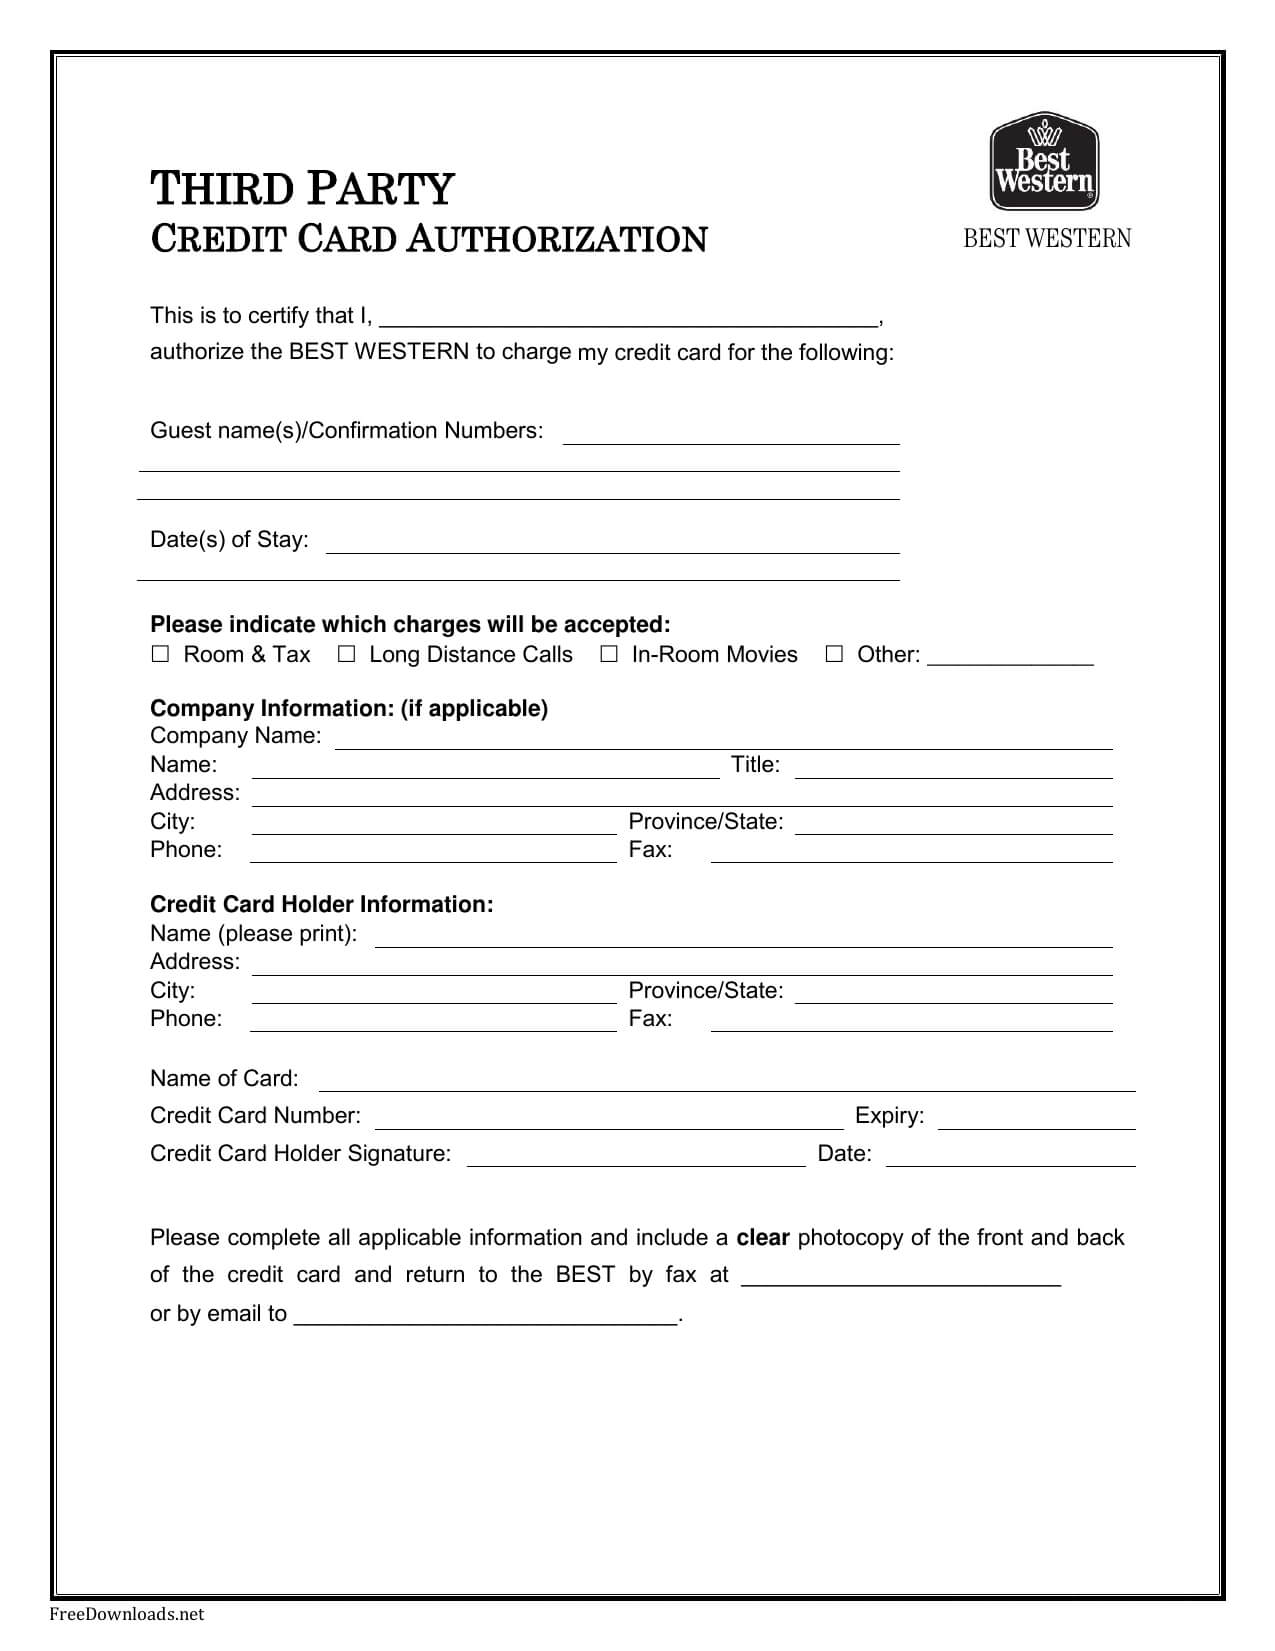 Free Printable Credit Card Authorization Form – Forza Pertaining To Credit Card Authorization Form Template Word